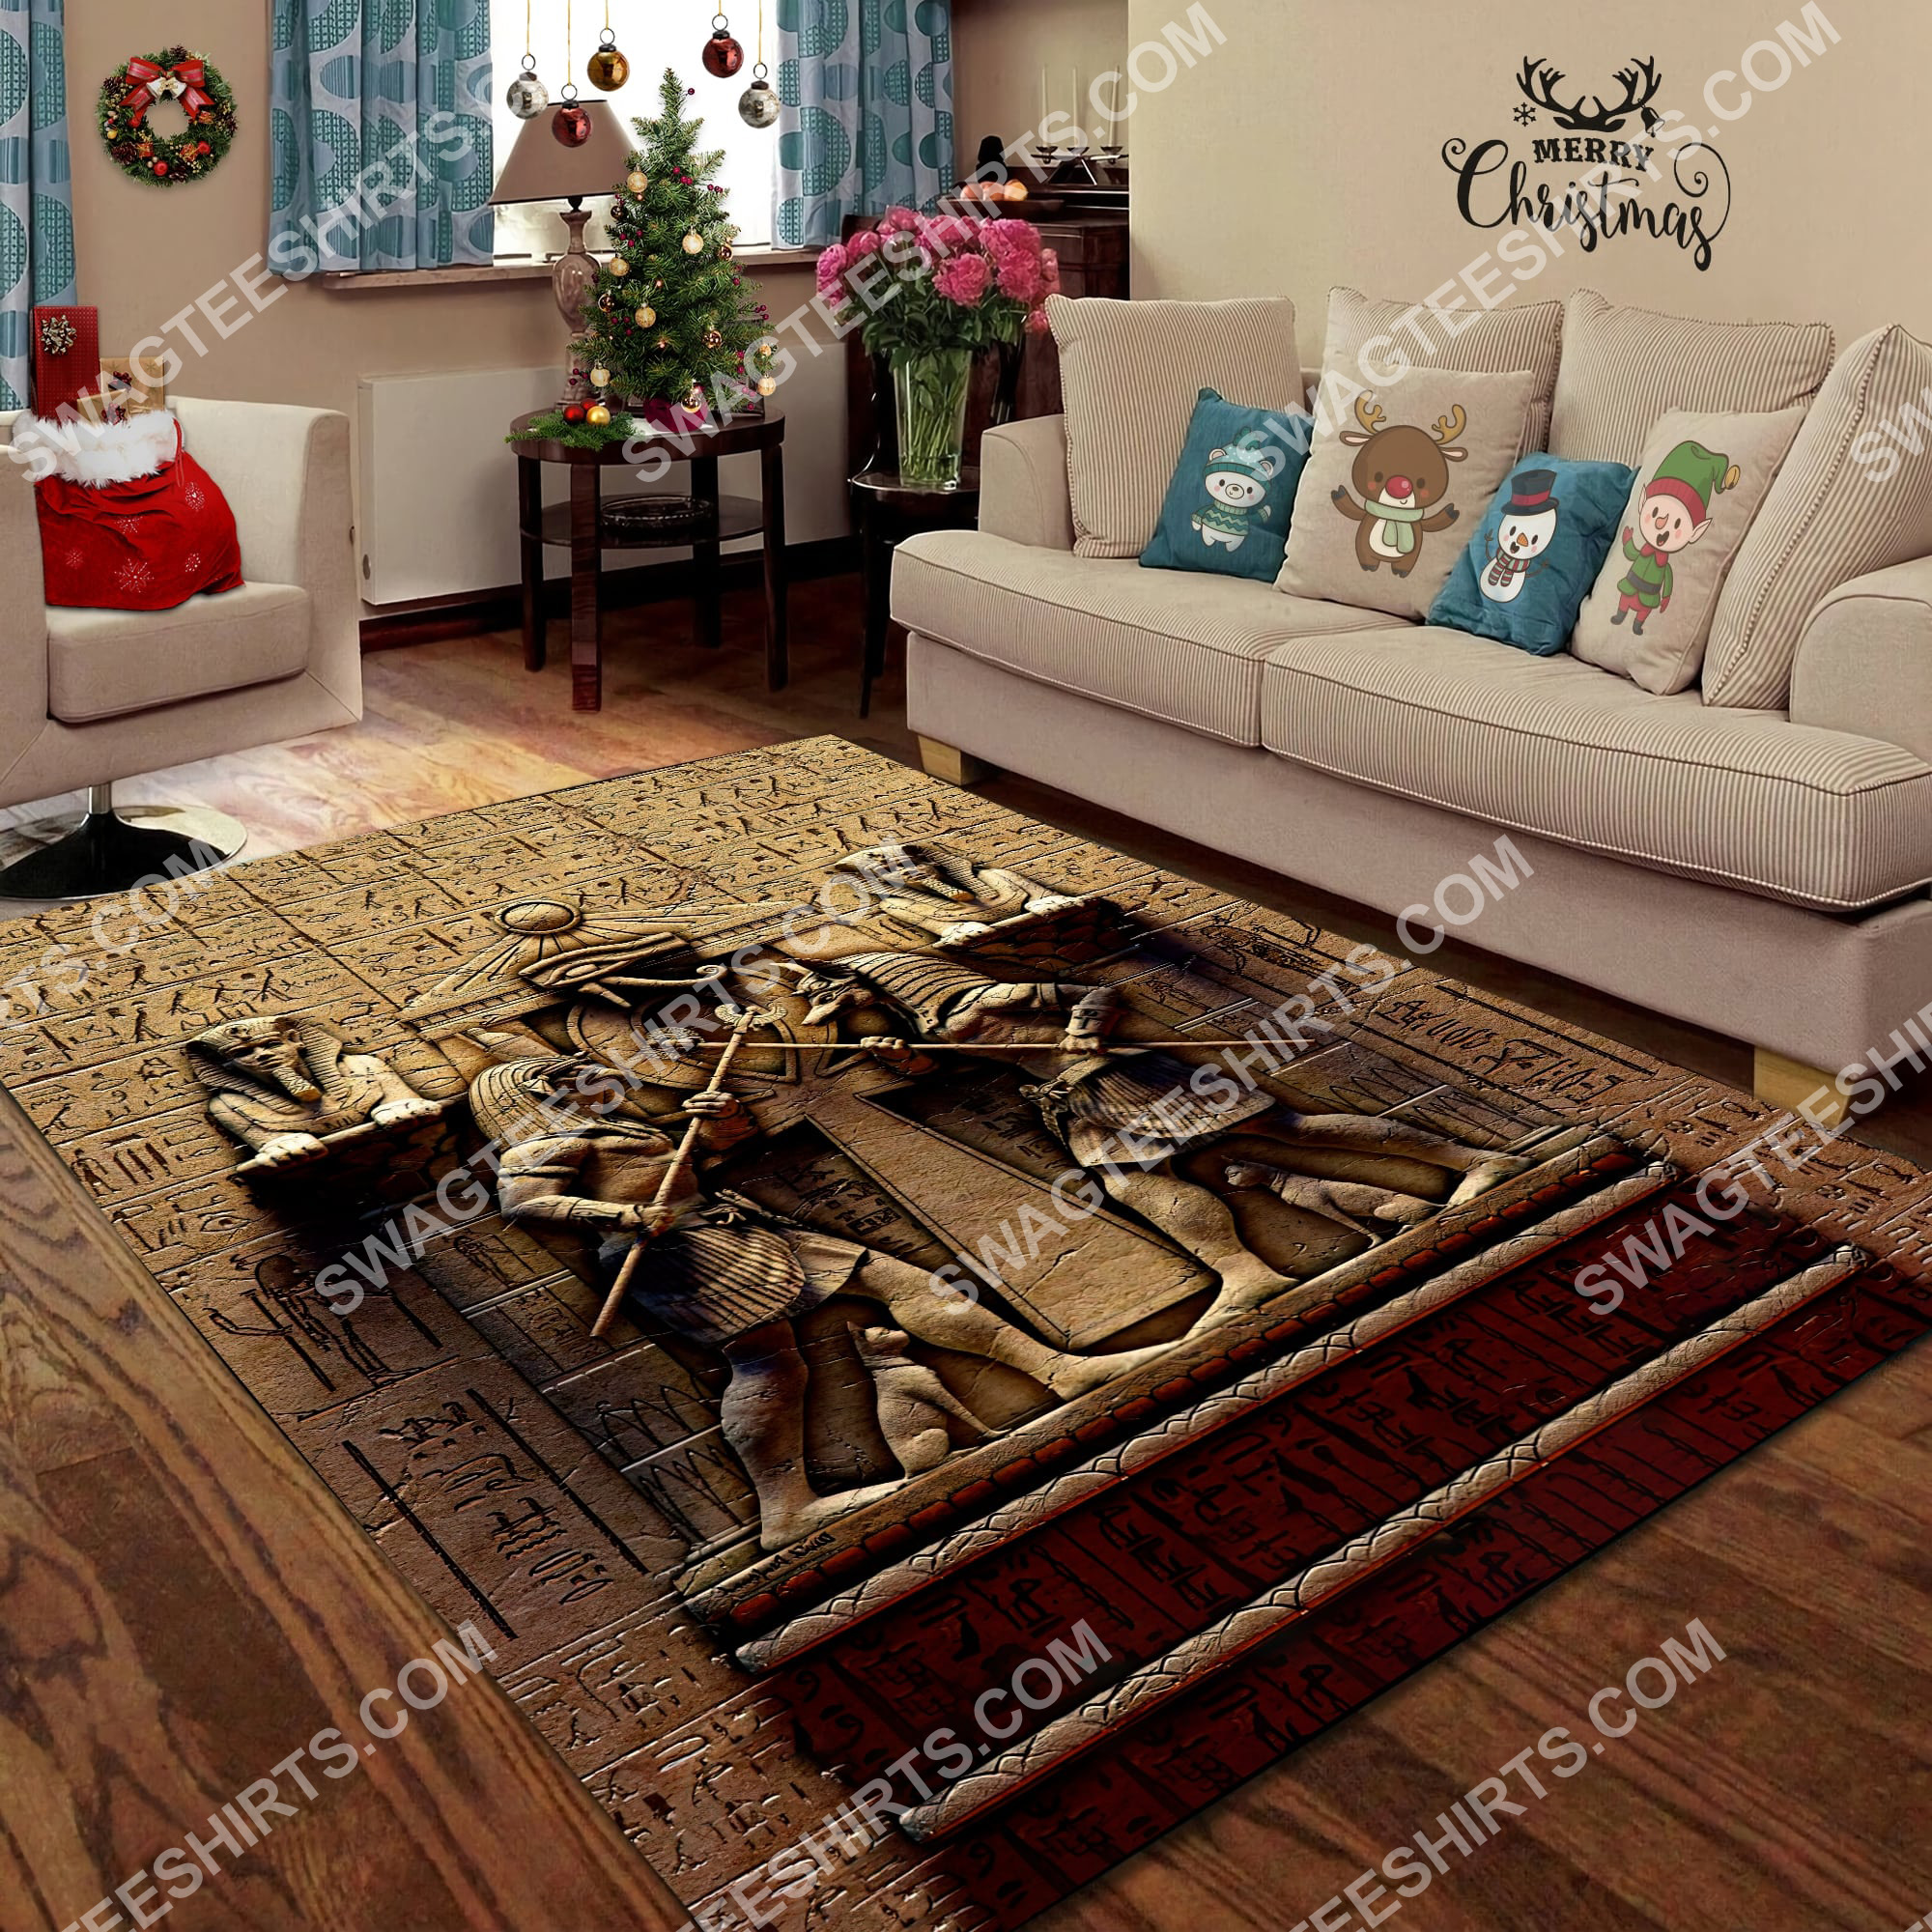 anubis egyptian civilization culture all over printed rug 4(1)